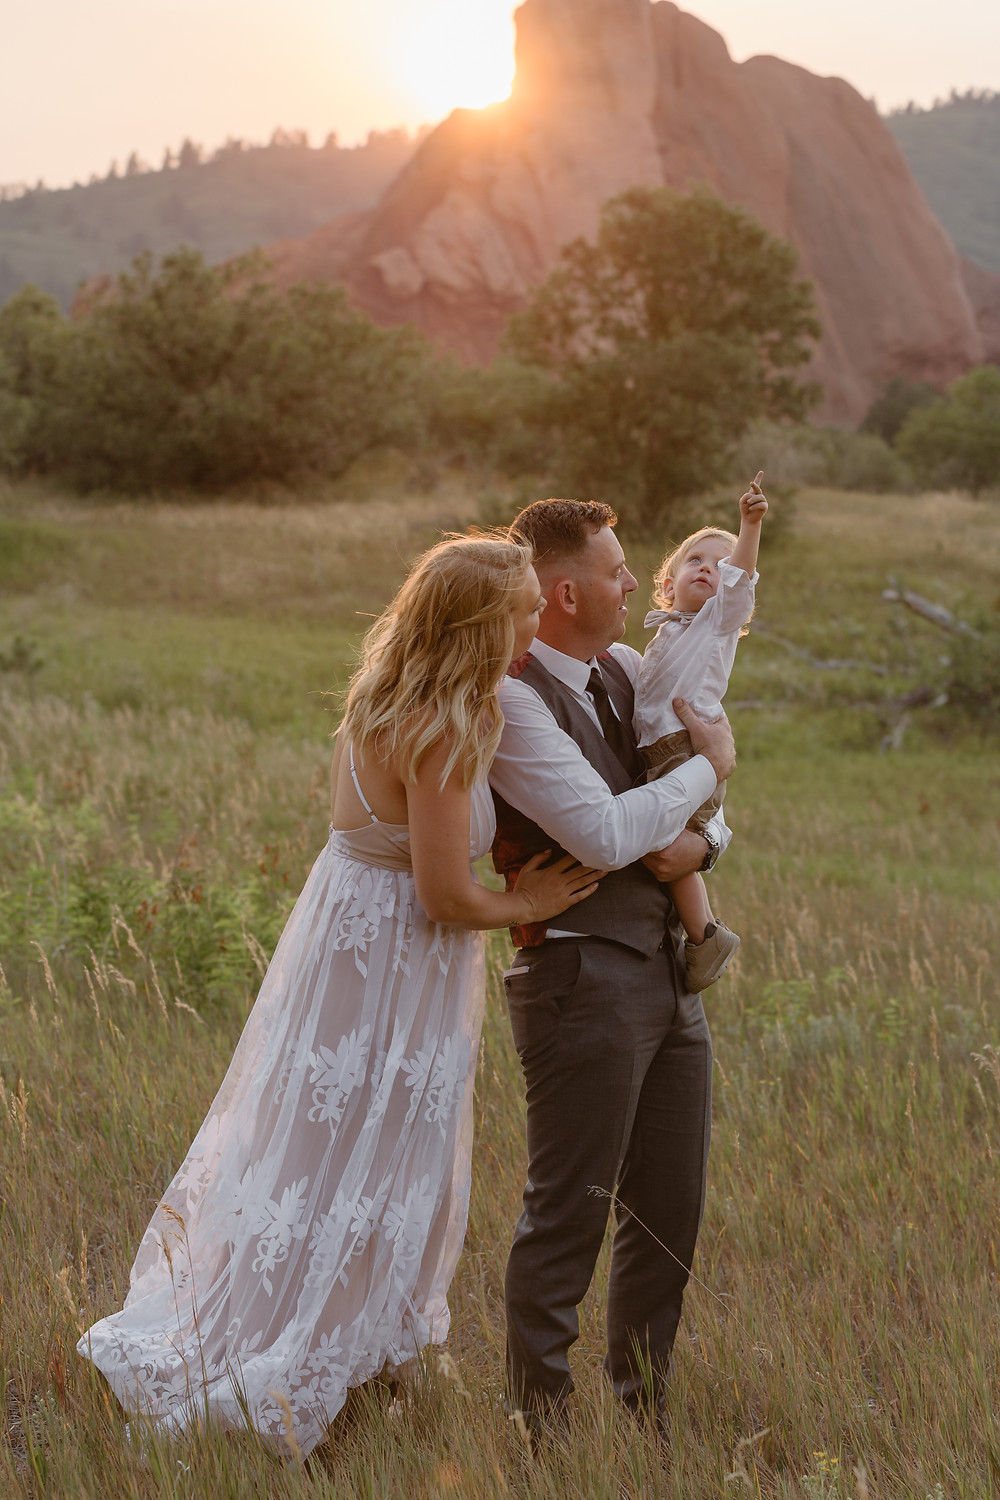 family elopement with red rocks and the sun setting behind them while the parents hold the baby